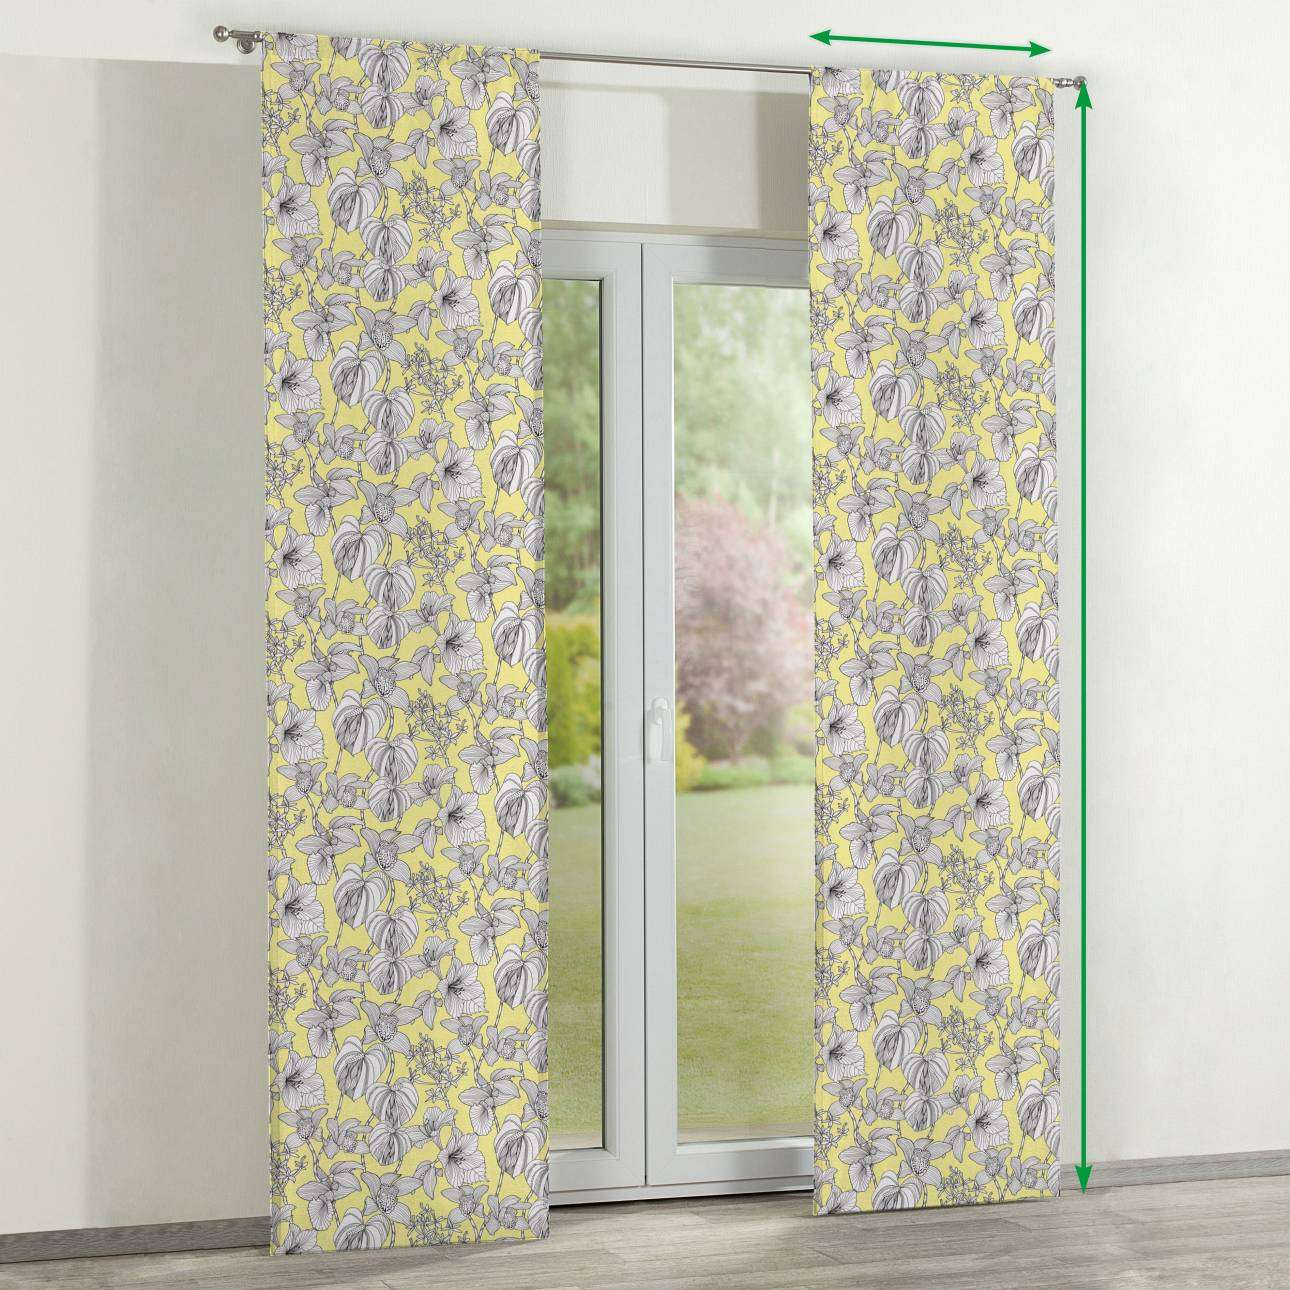 Slot panel curtains – Set of 2 in collection Brooklyn, fabric: 137-78